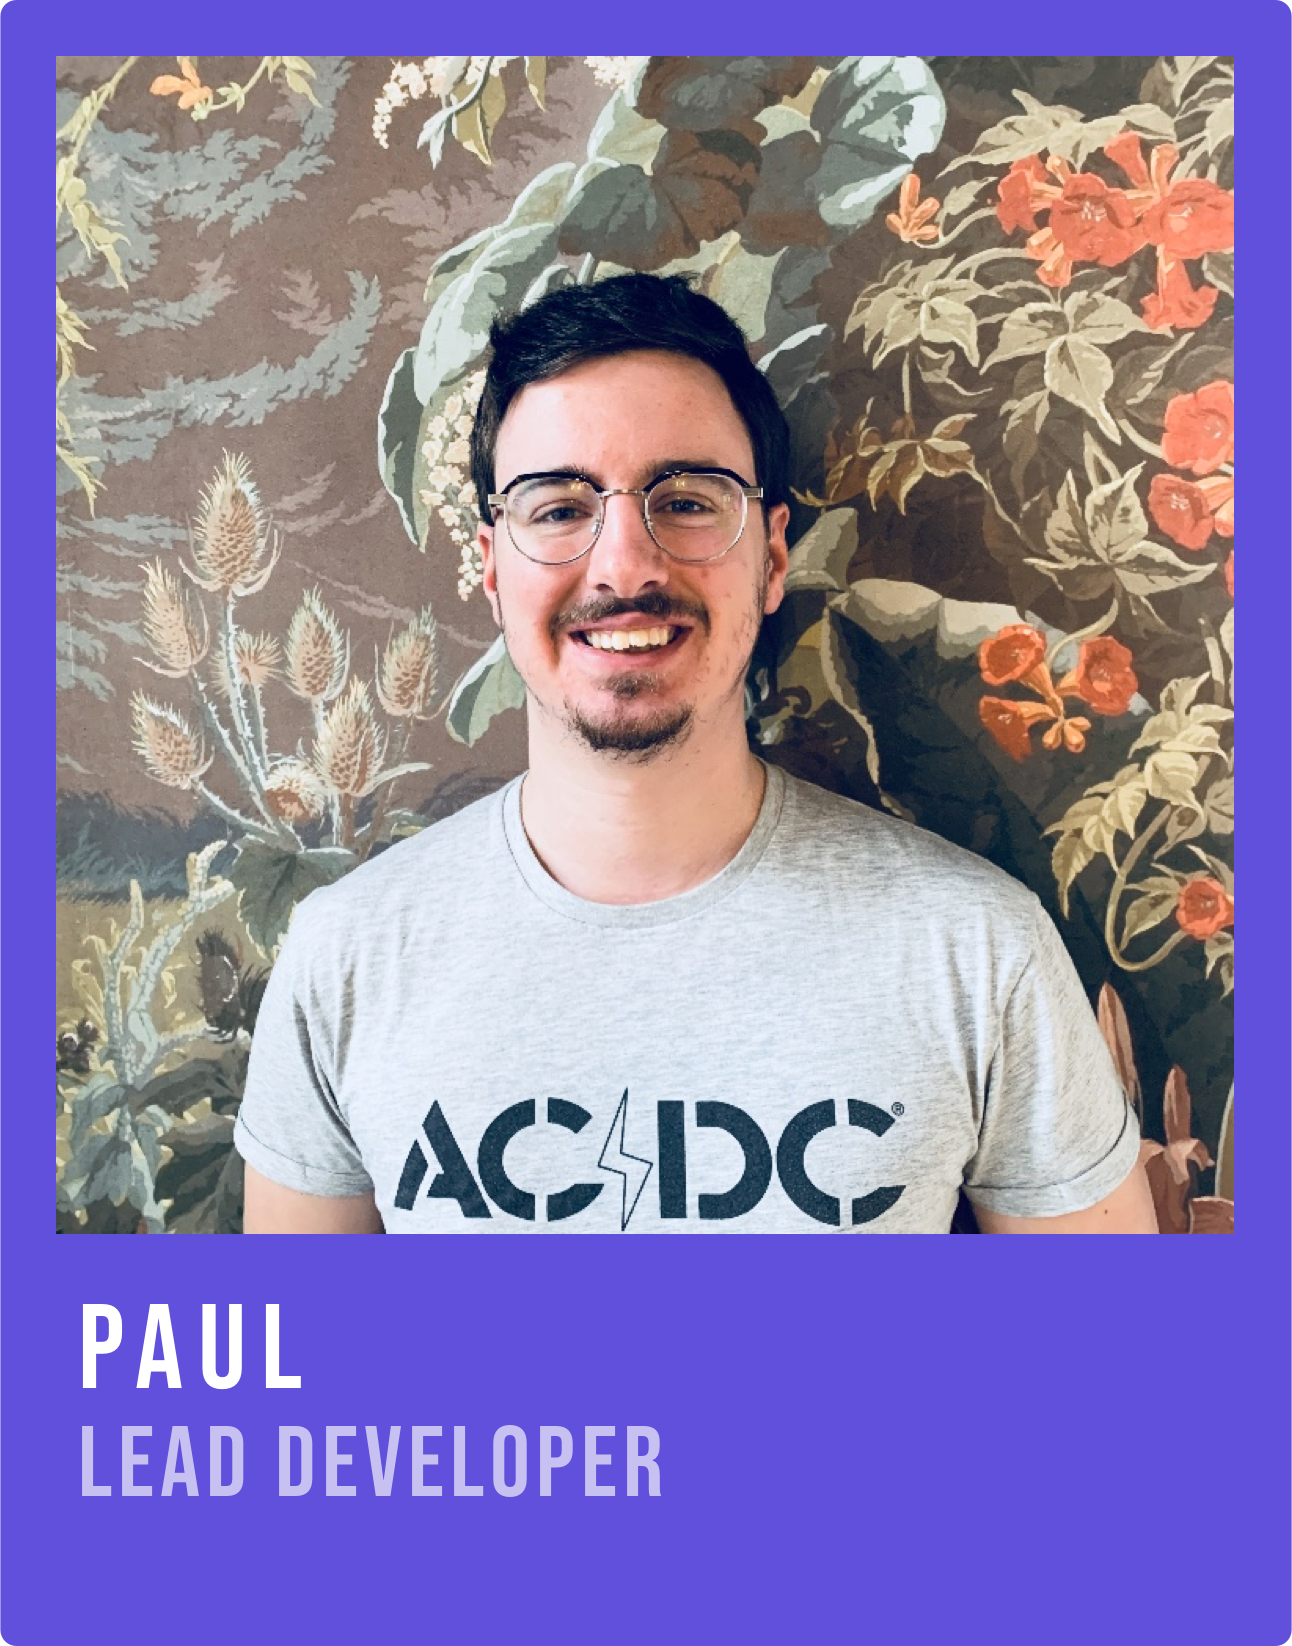 Image Paul lead developer